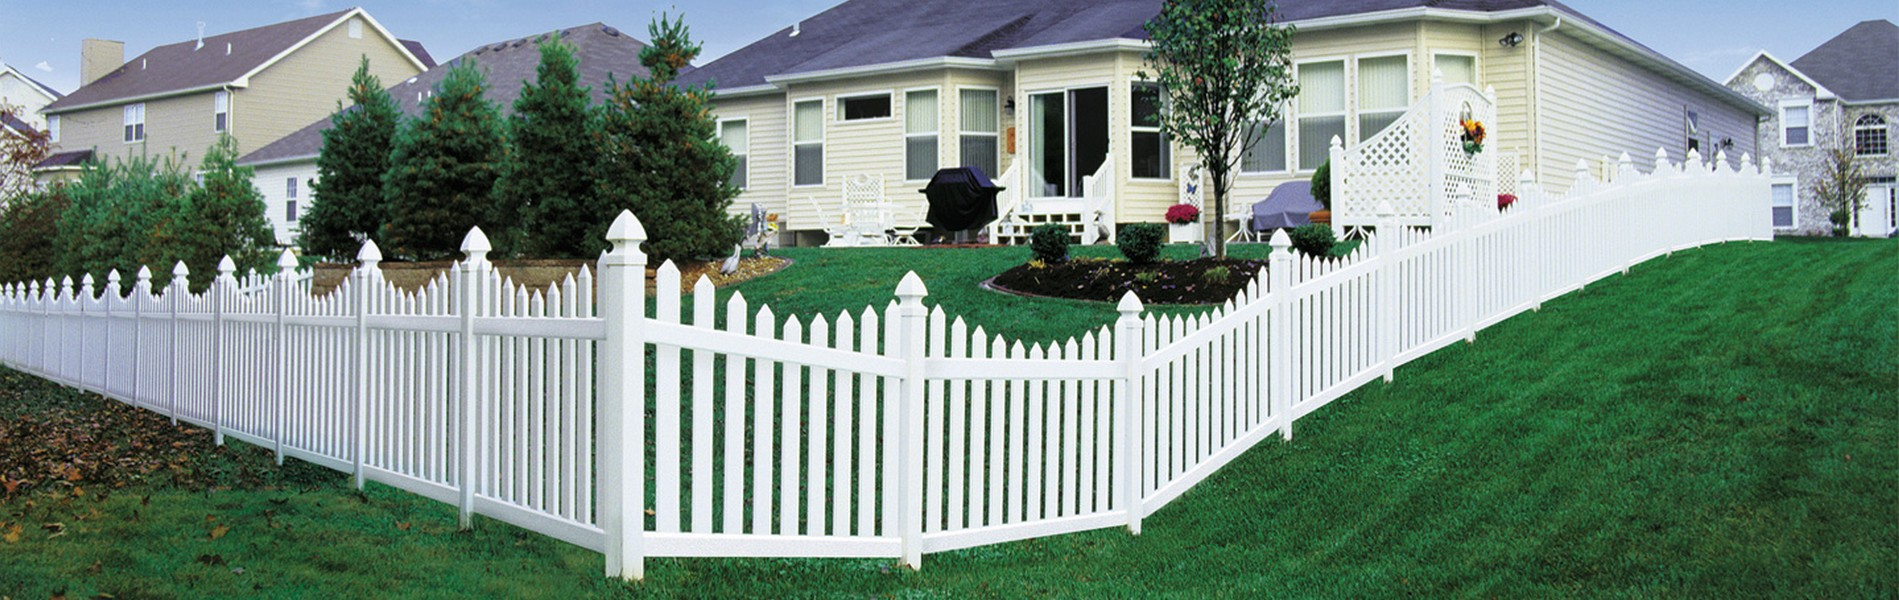 Poly Vinyl Fencing for Grand Rapids and West Michigan installed by